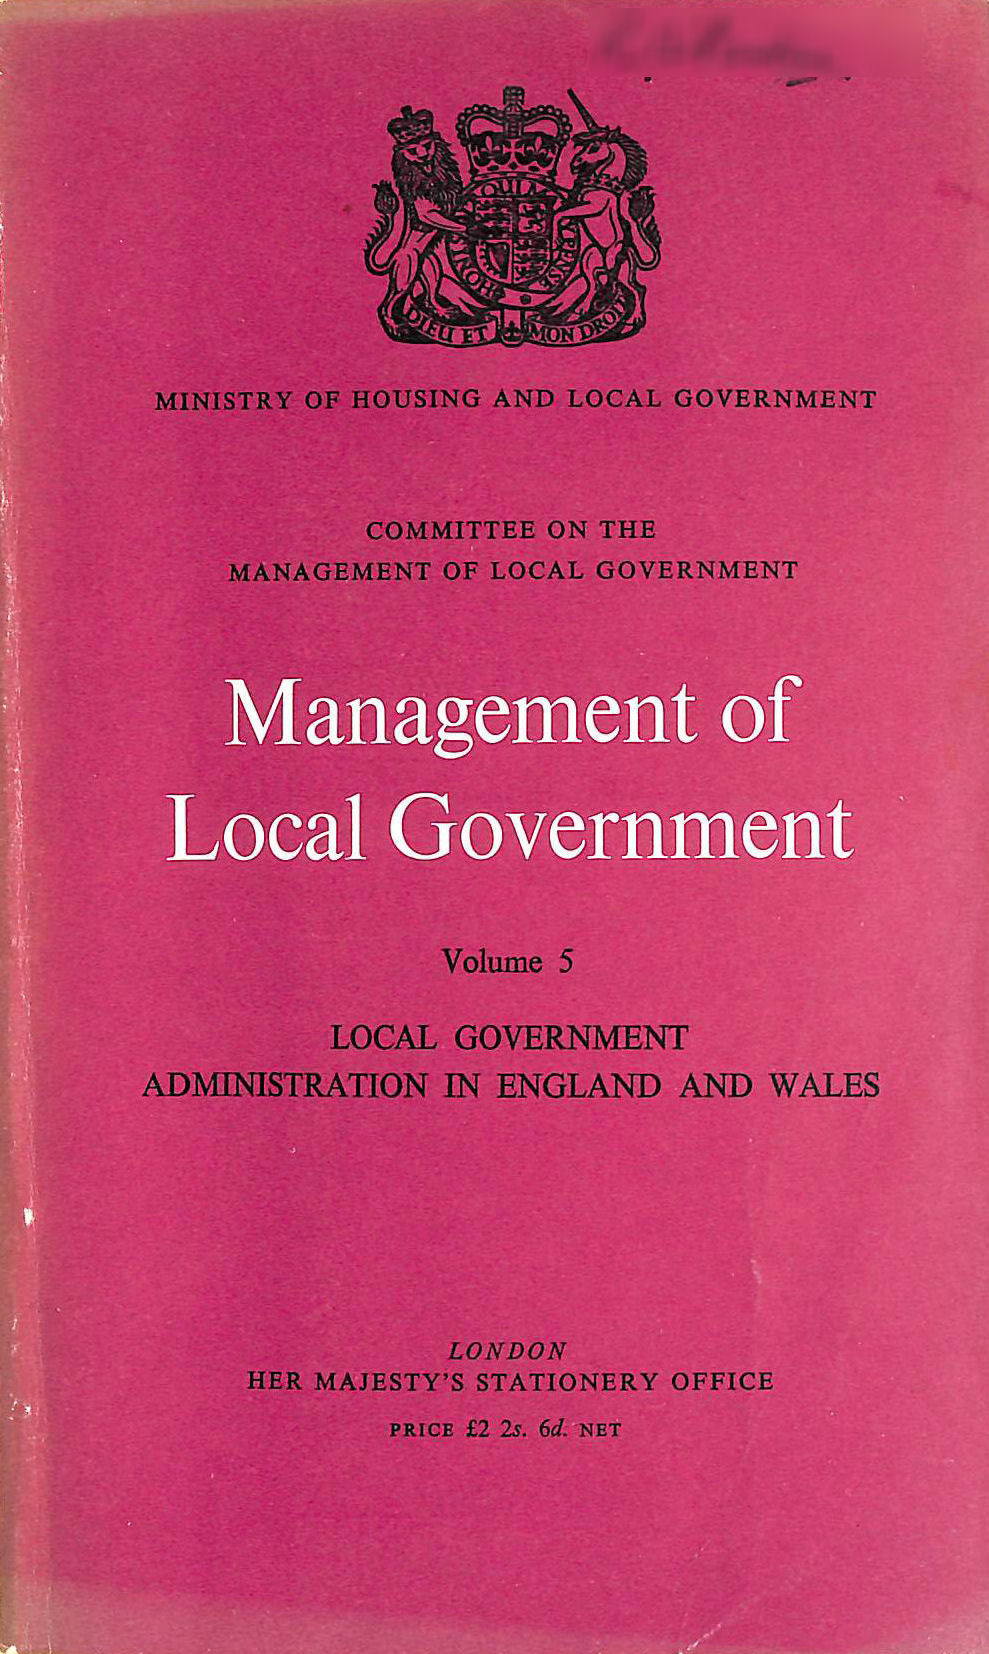 Image for MANAGEMENT OF LOCAL GOVERNMENT: VOLUME 5 - LOCAL GOVERNMENT ADMINISTRATION IN ENGLAND AND WALES.